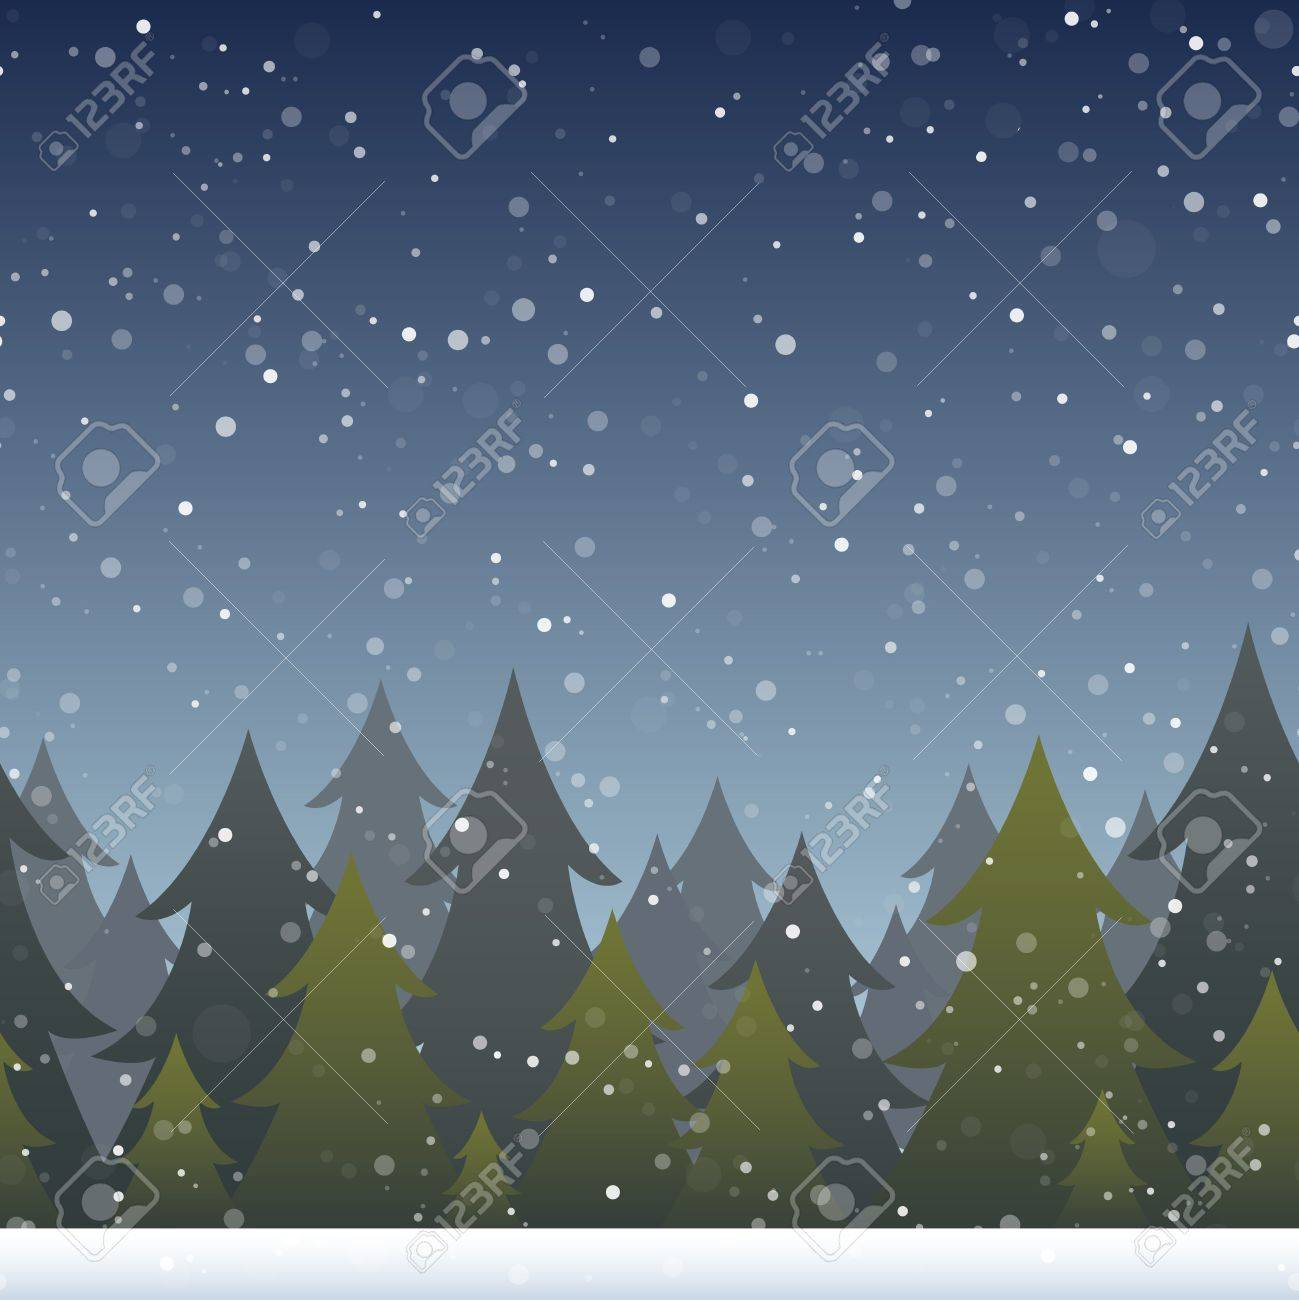 A background depicting a snowy evergreen forest. Horizontally repeatable. Stock Vector - 18849602